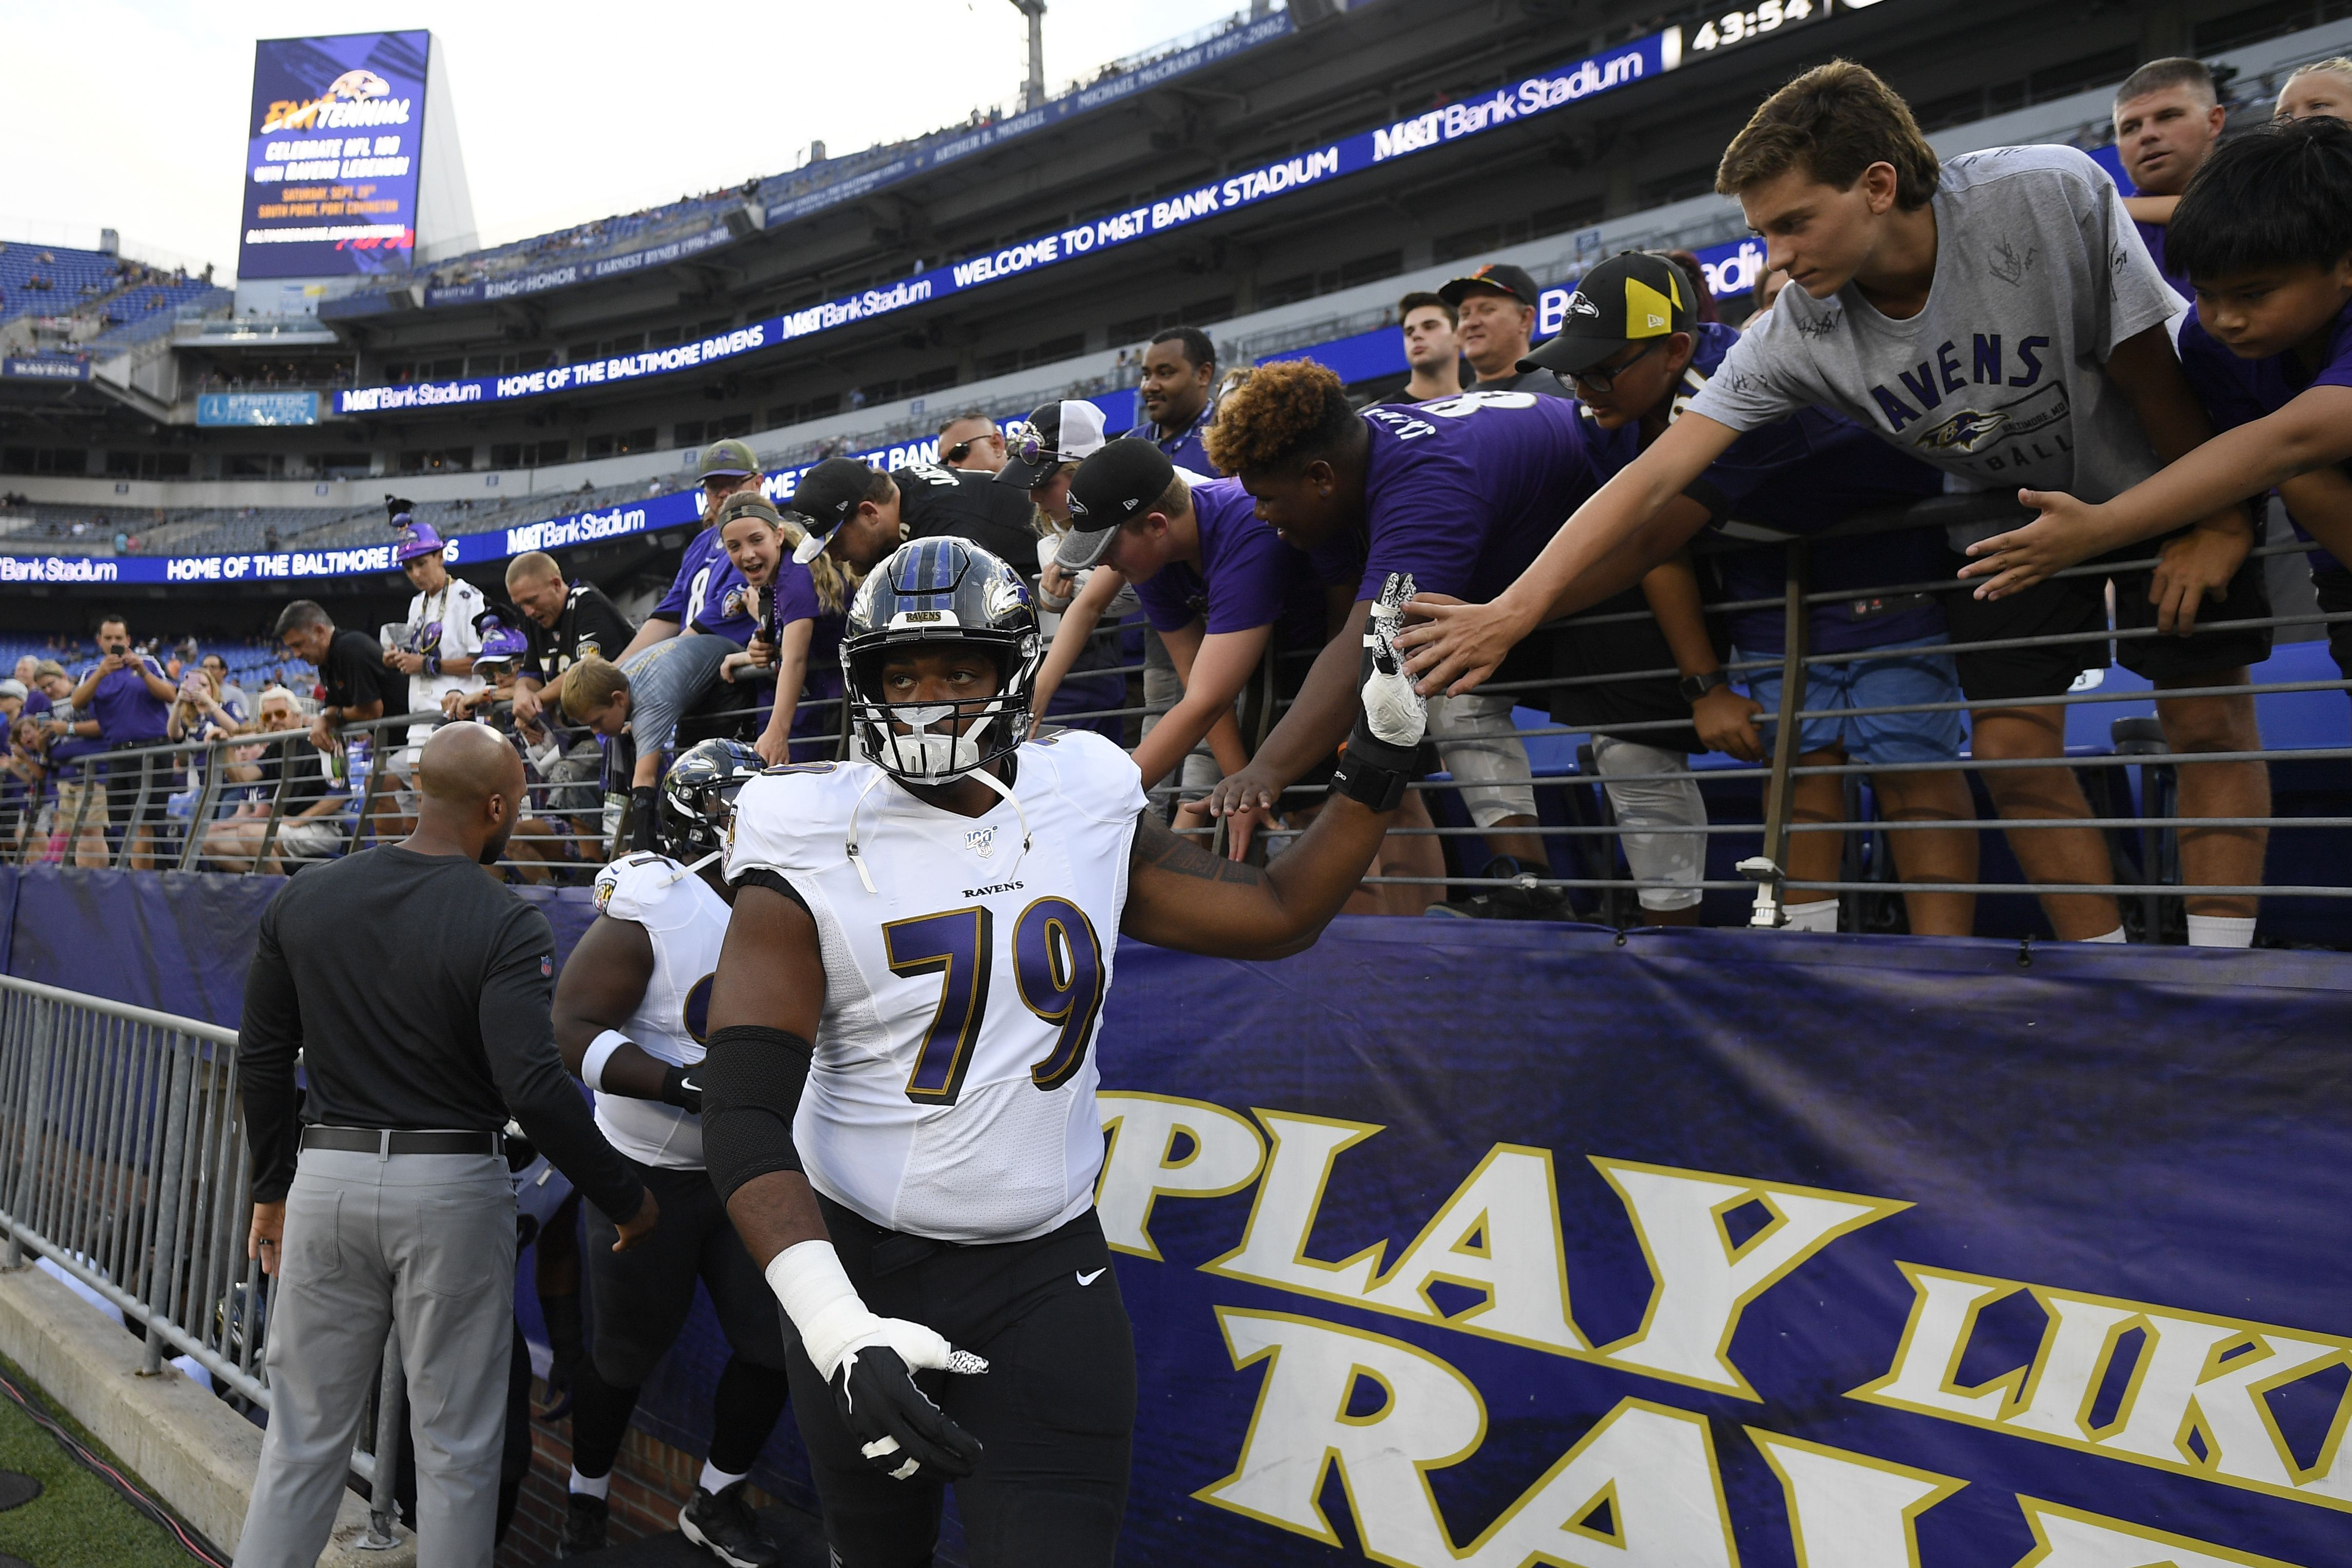 Baltimore Ravens Inactives Ronnie Stanley Out Mark Andrews Among Those In For Game Vs Jets Pennlive Com How can jets slow down ravens rushing attack? pennlive com